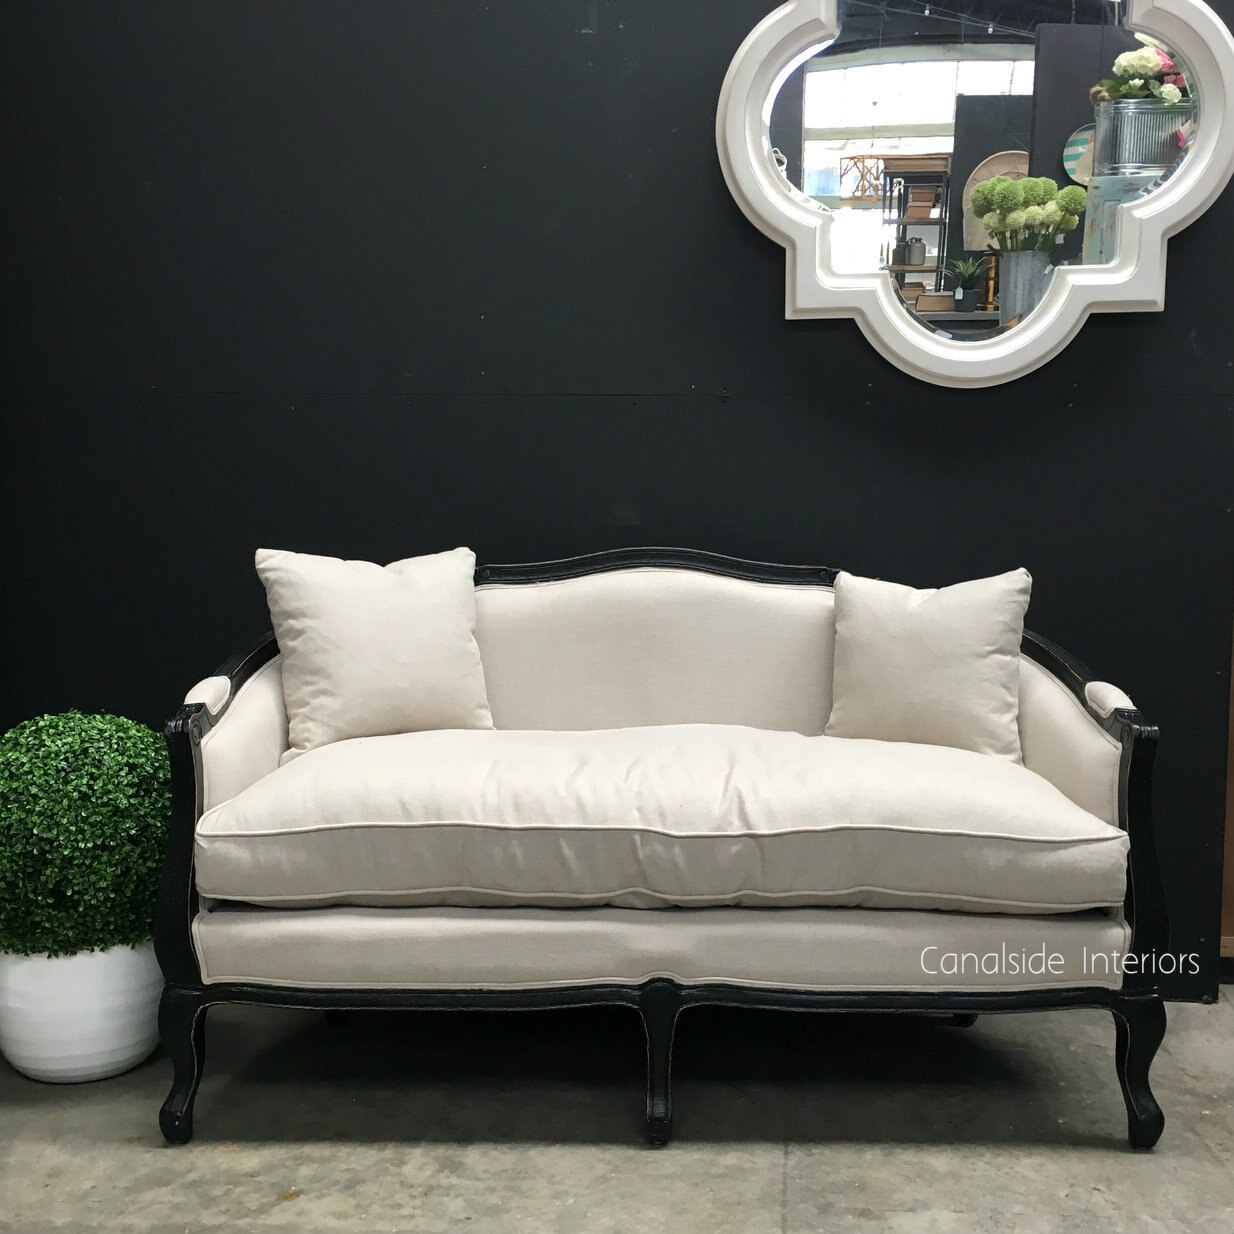 Full Size of Canape Sofa Arya 25 Seater Distressed Black With Cream Eck Blau Büffelleder Kolonialstil Big Braun Rund Alternatives Landhausstil Walter Knoll Mit Sofa Canape Sofa